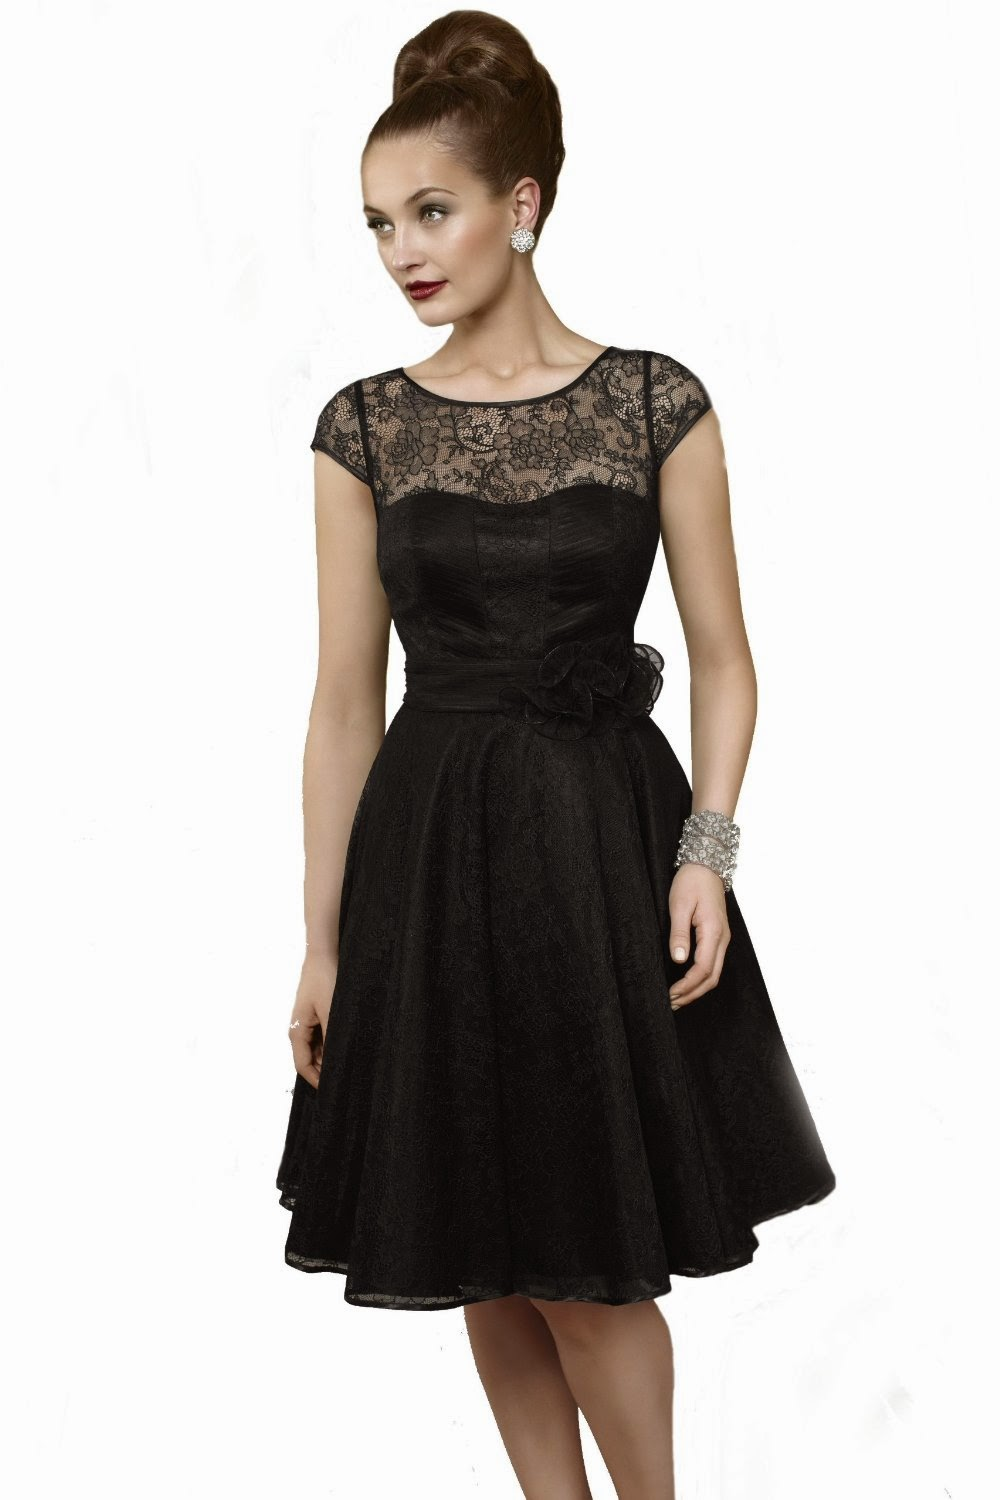 Short Black Dresses style prom dress|Gown You